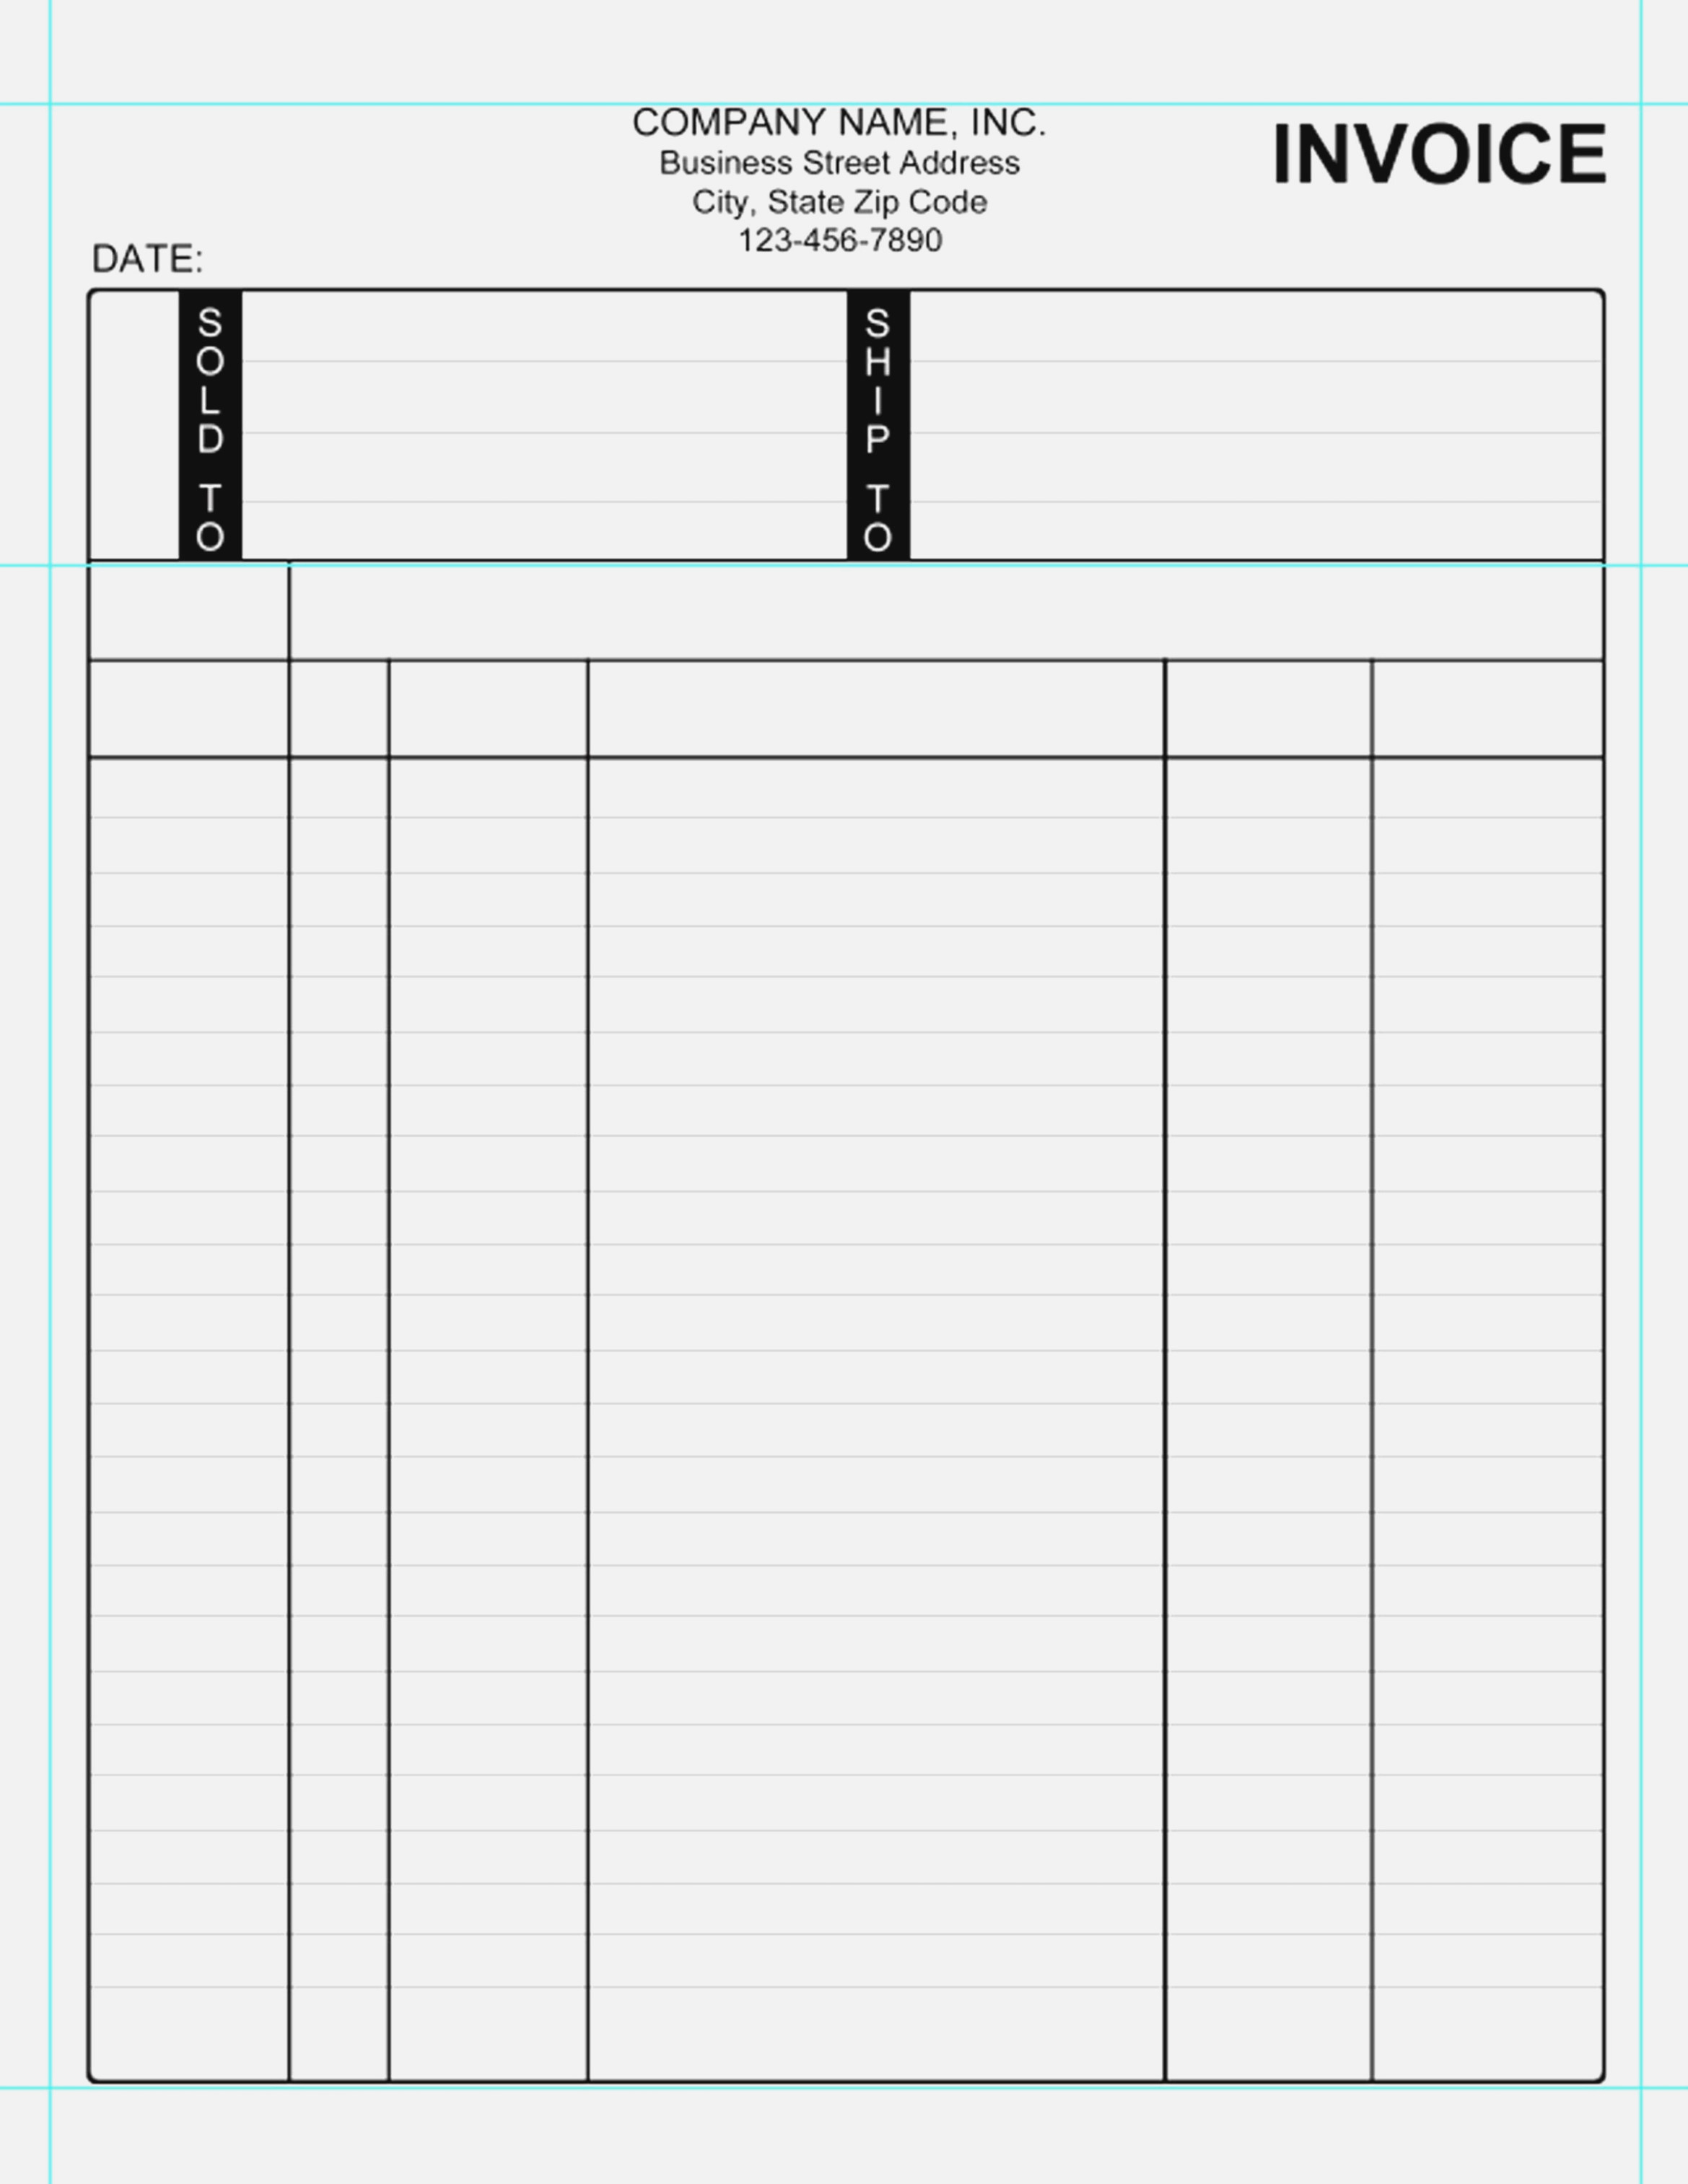 Free Printable Auto Repair Invoice Template Truck Repair Invoice - Free Printable Auto Repair Invoice Template